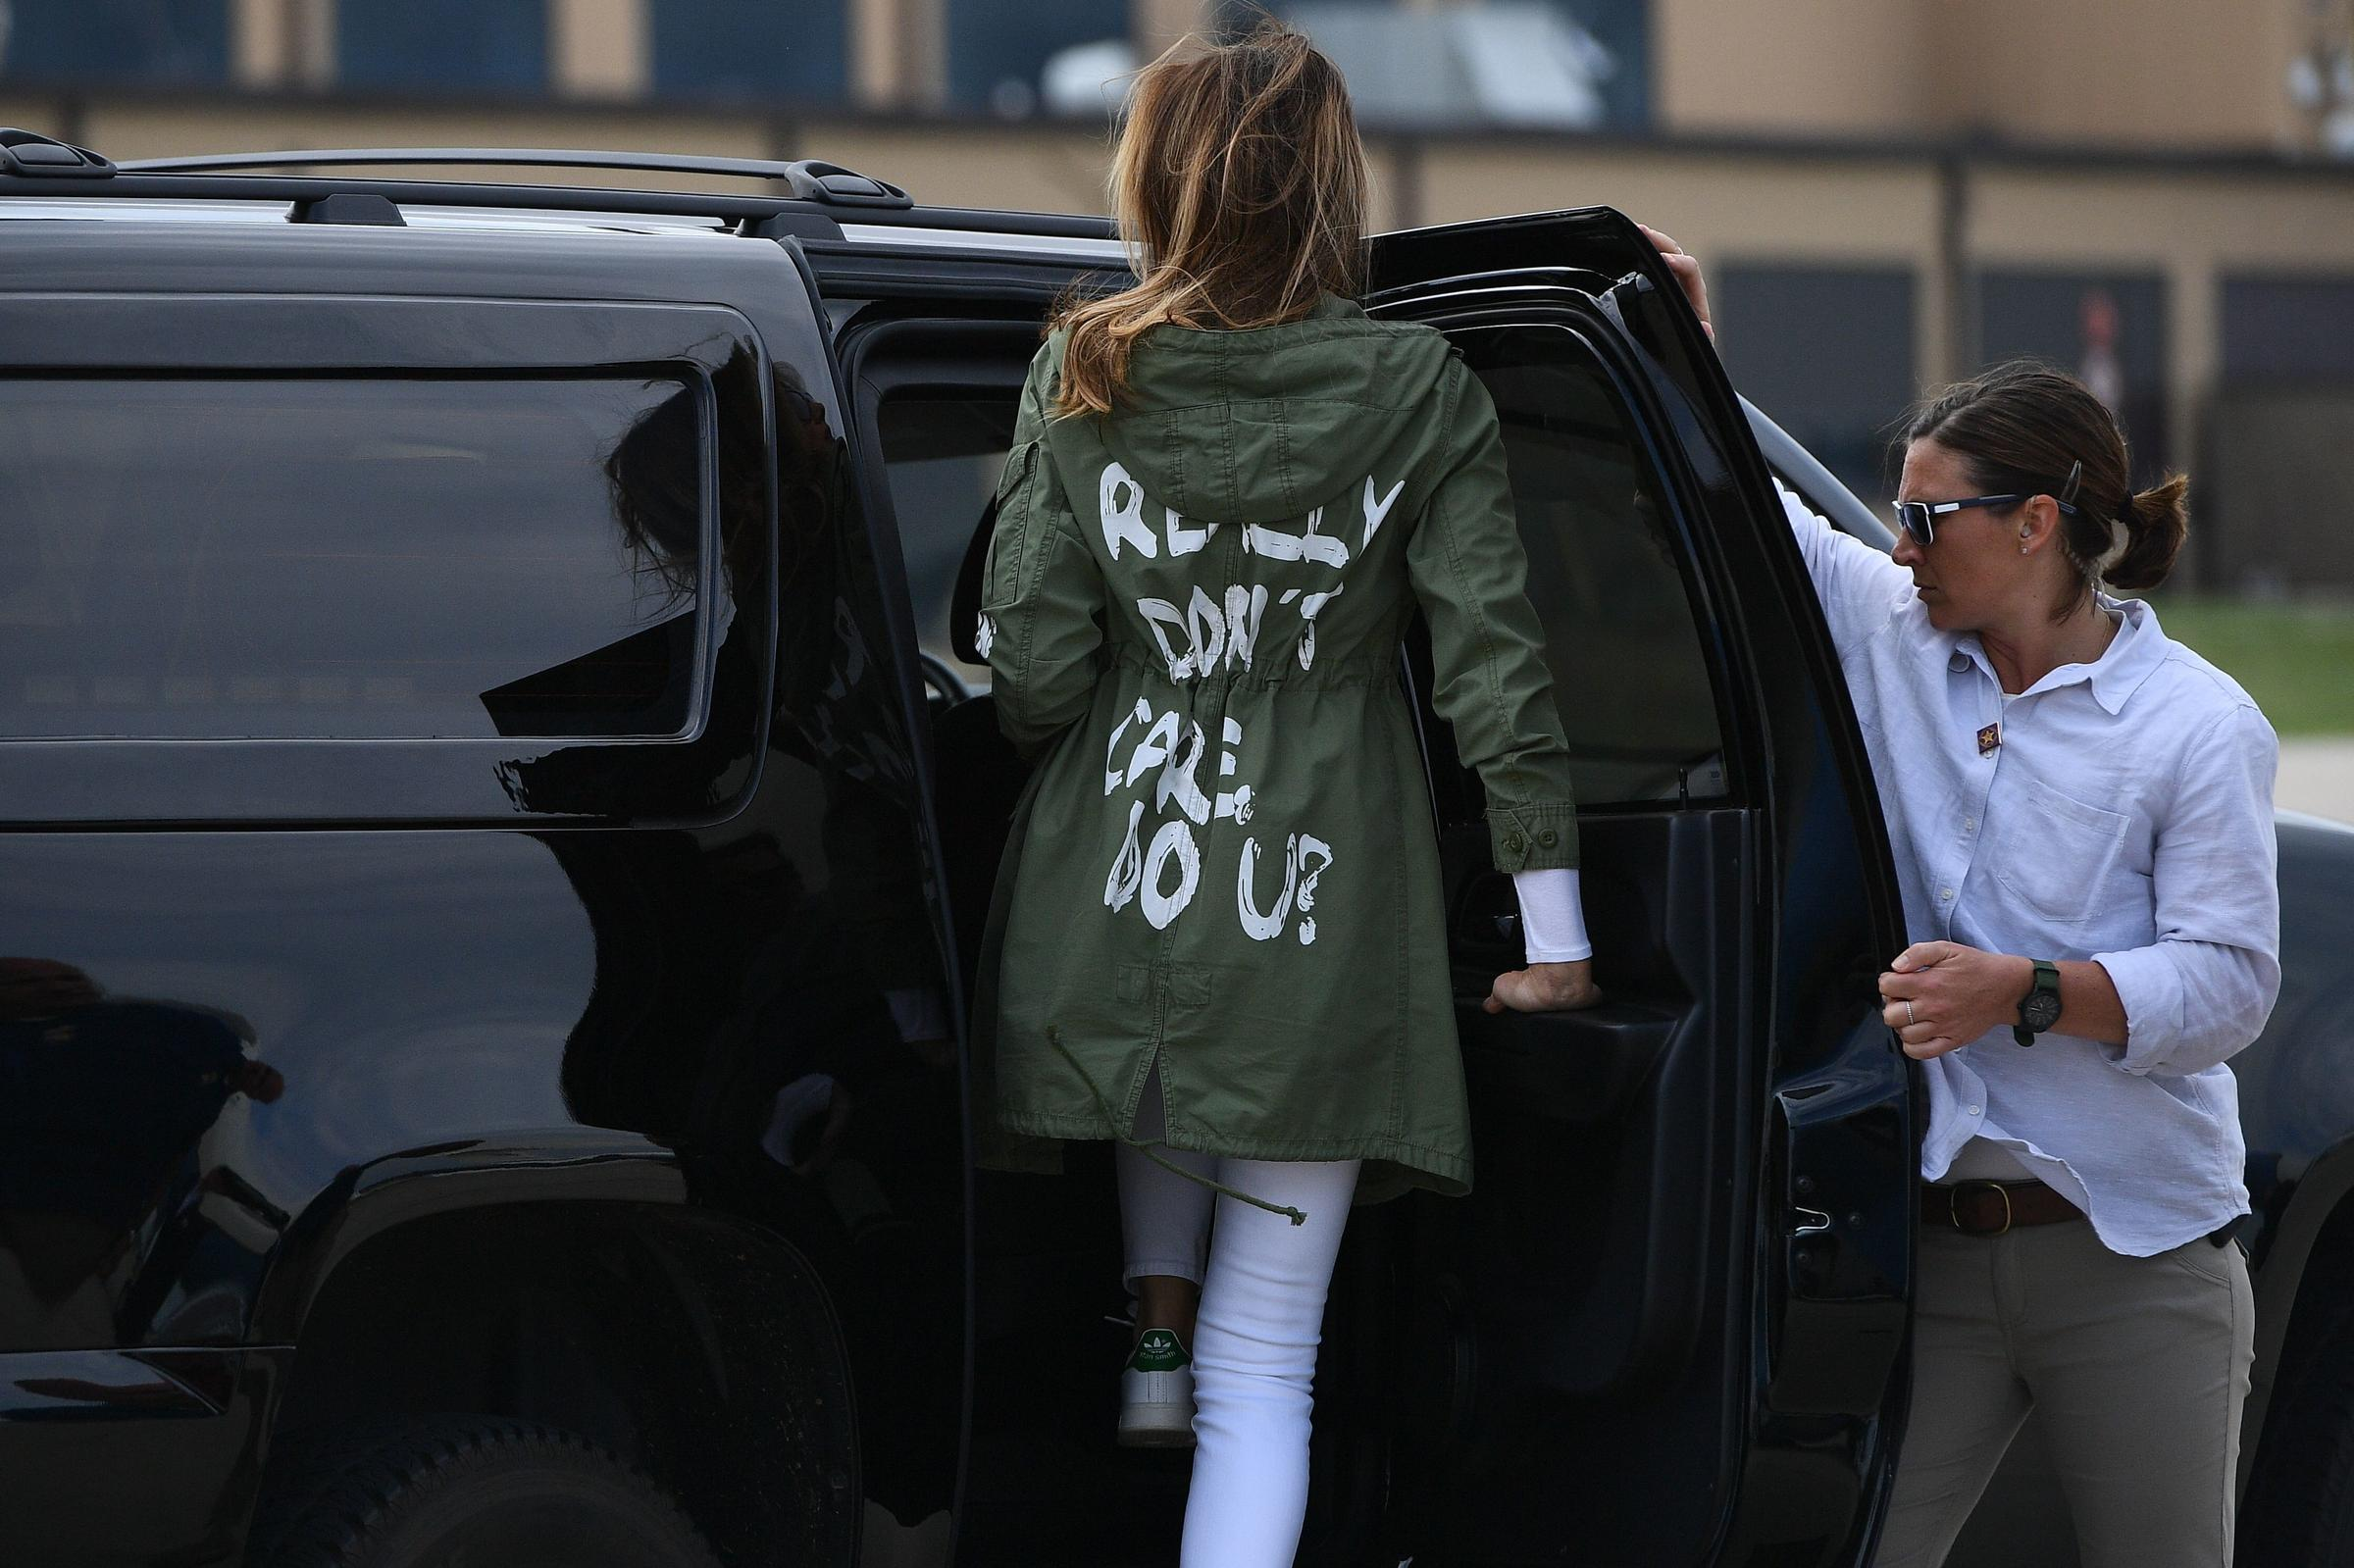 First lady's jacket overshadows trip to visit immigration children